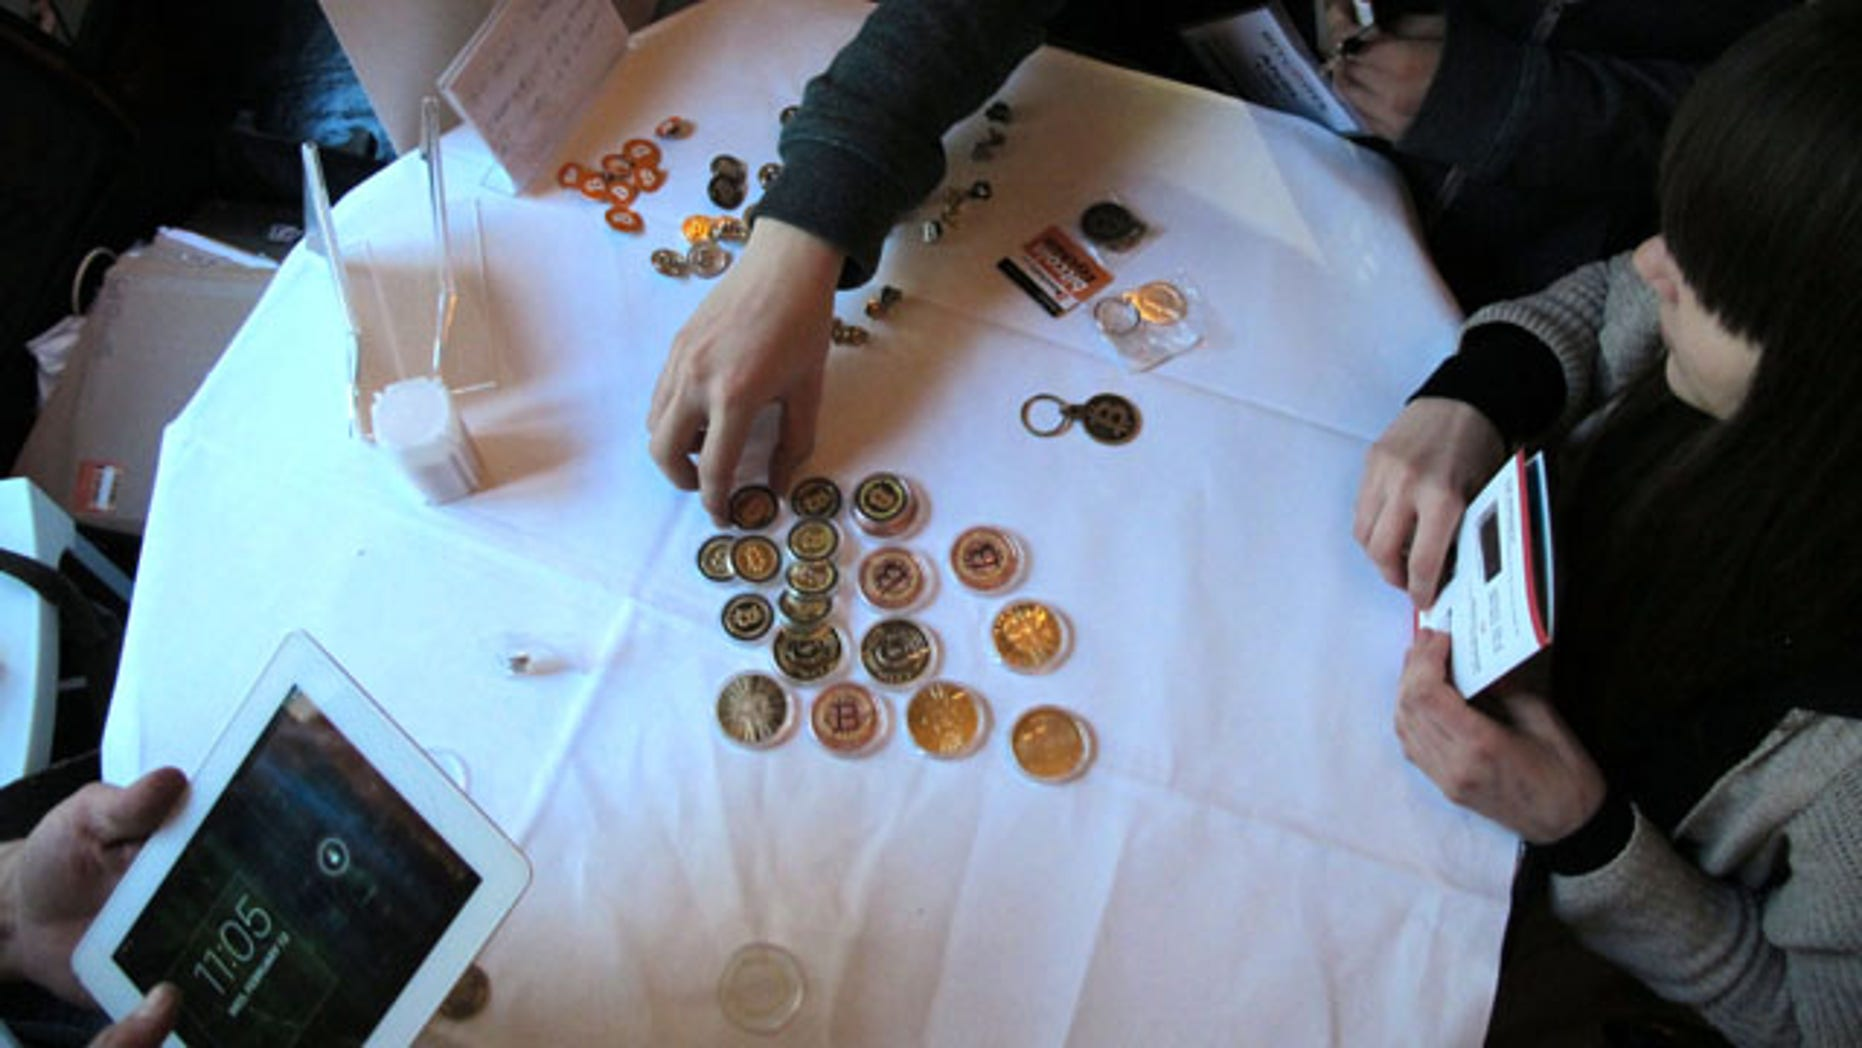 FILE - In this Feb. 12, 2014 file photo, attendees of the Inside Bitcoins conference in Berlin examine Bitcoin buttons. (AP Photo)